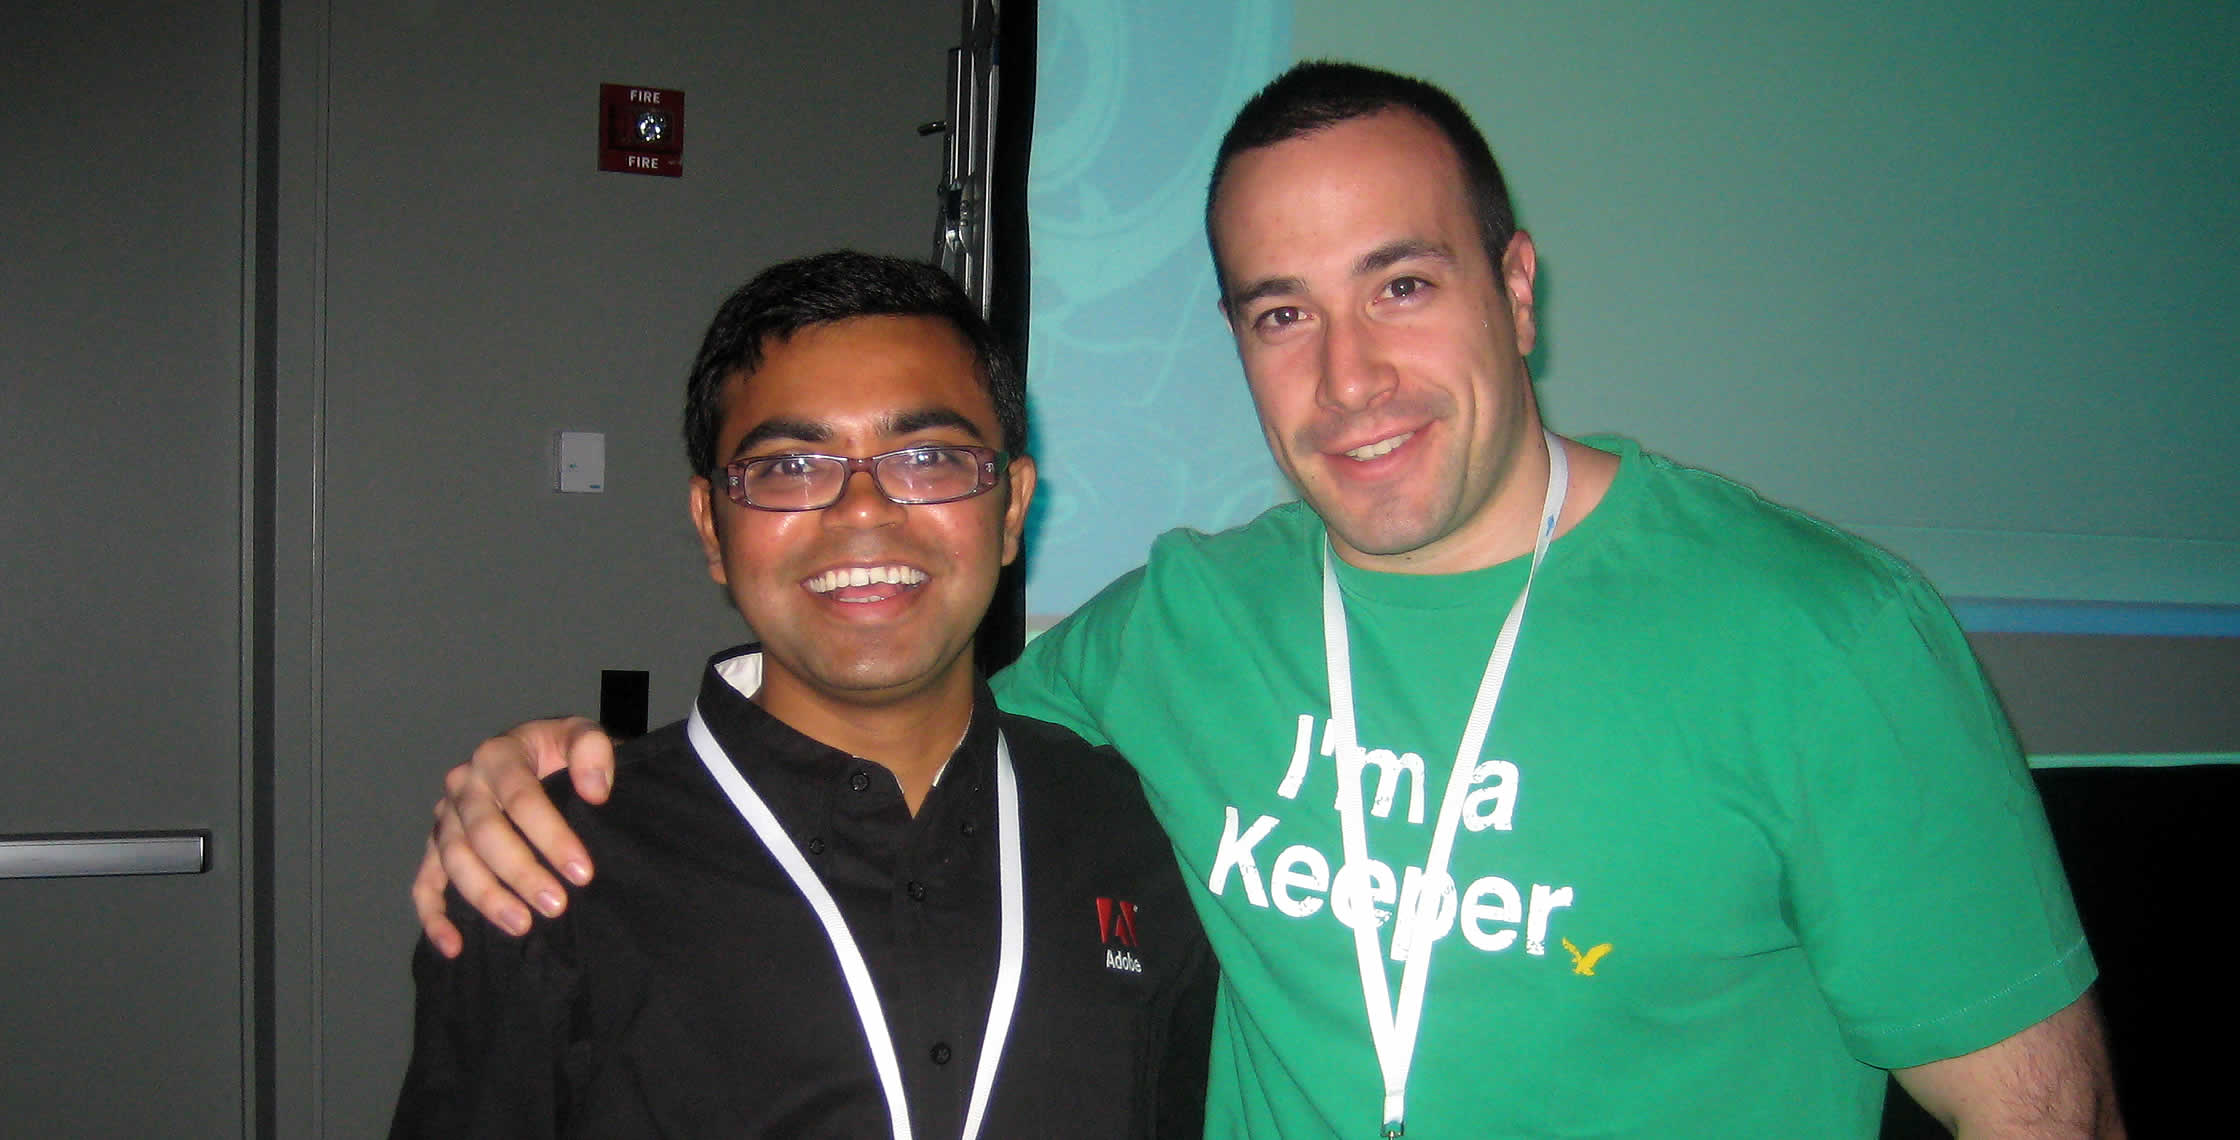 Ben Nadel at CFUNITED 2008 (Washington, D.C.) with: Rupesh Kumar